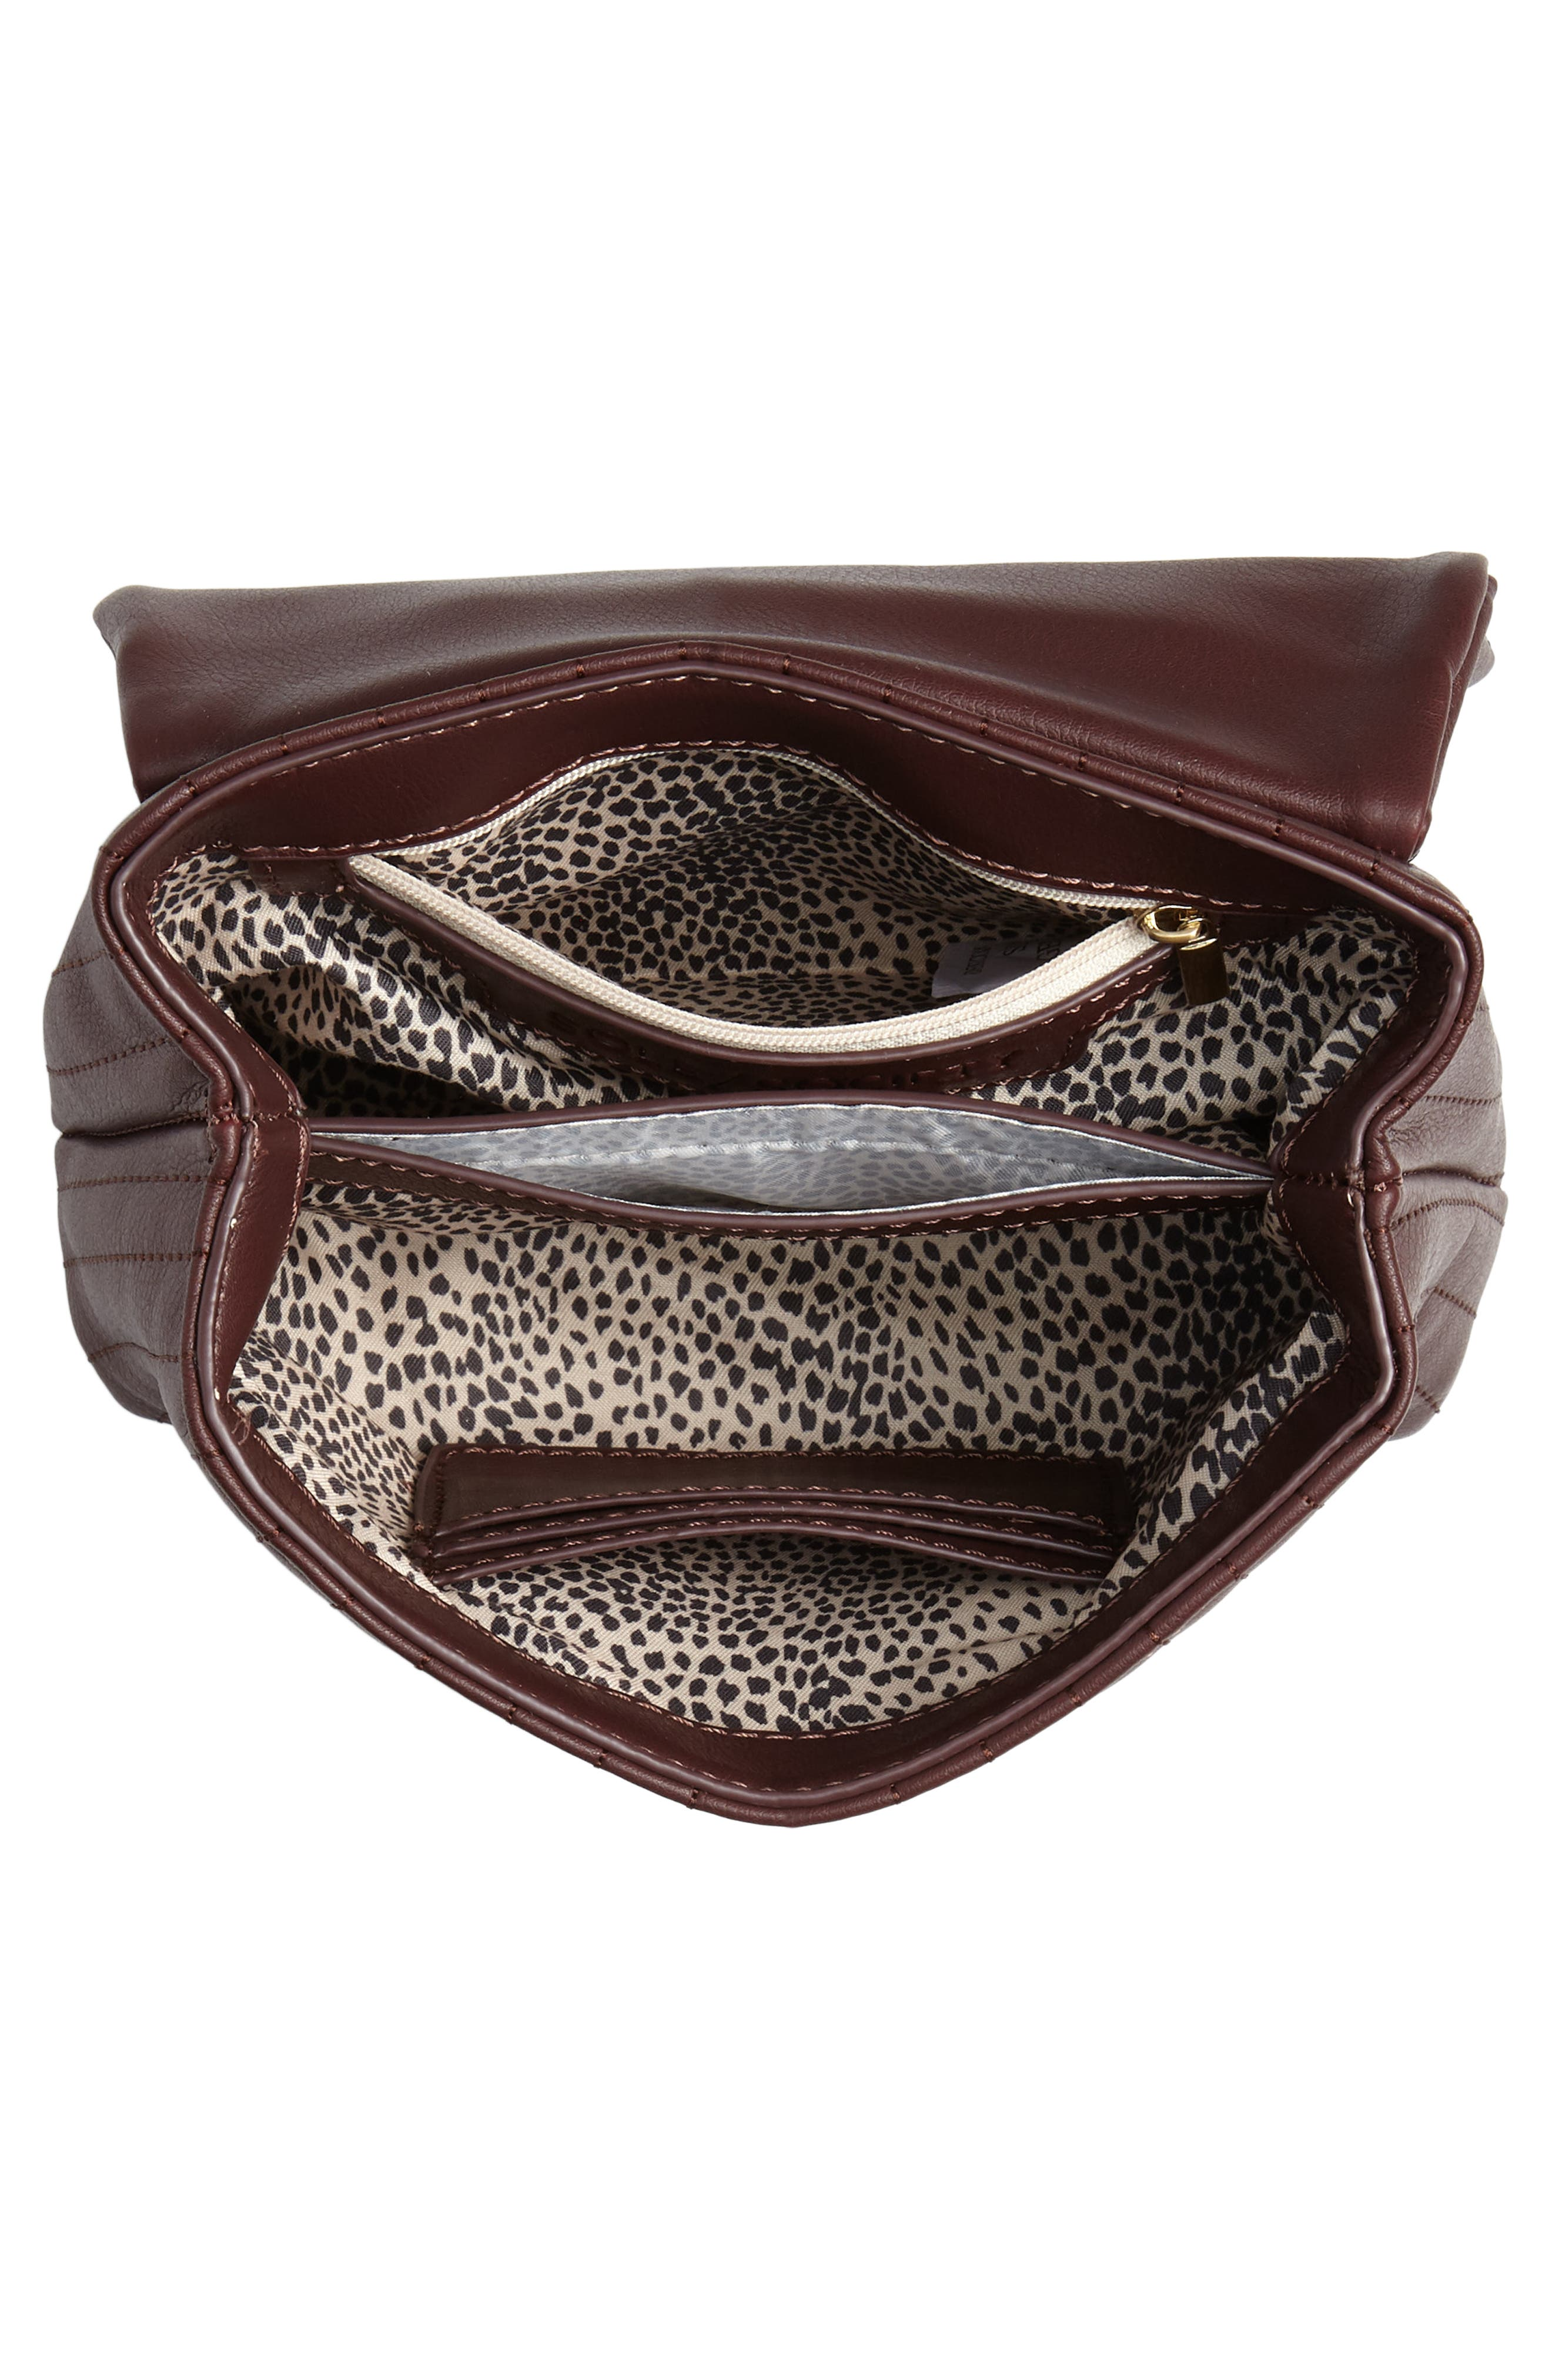 SOLE SOCIETY, Urche Faux Leather Crossbody Bag, Alternate thumbnail 5, color, OXBLOOD